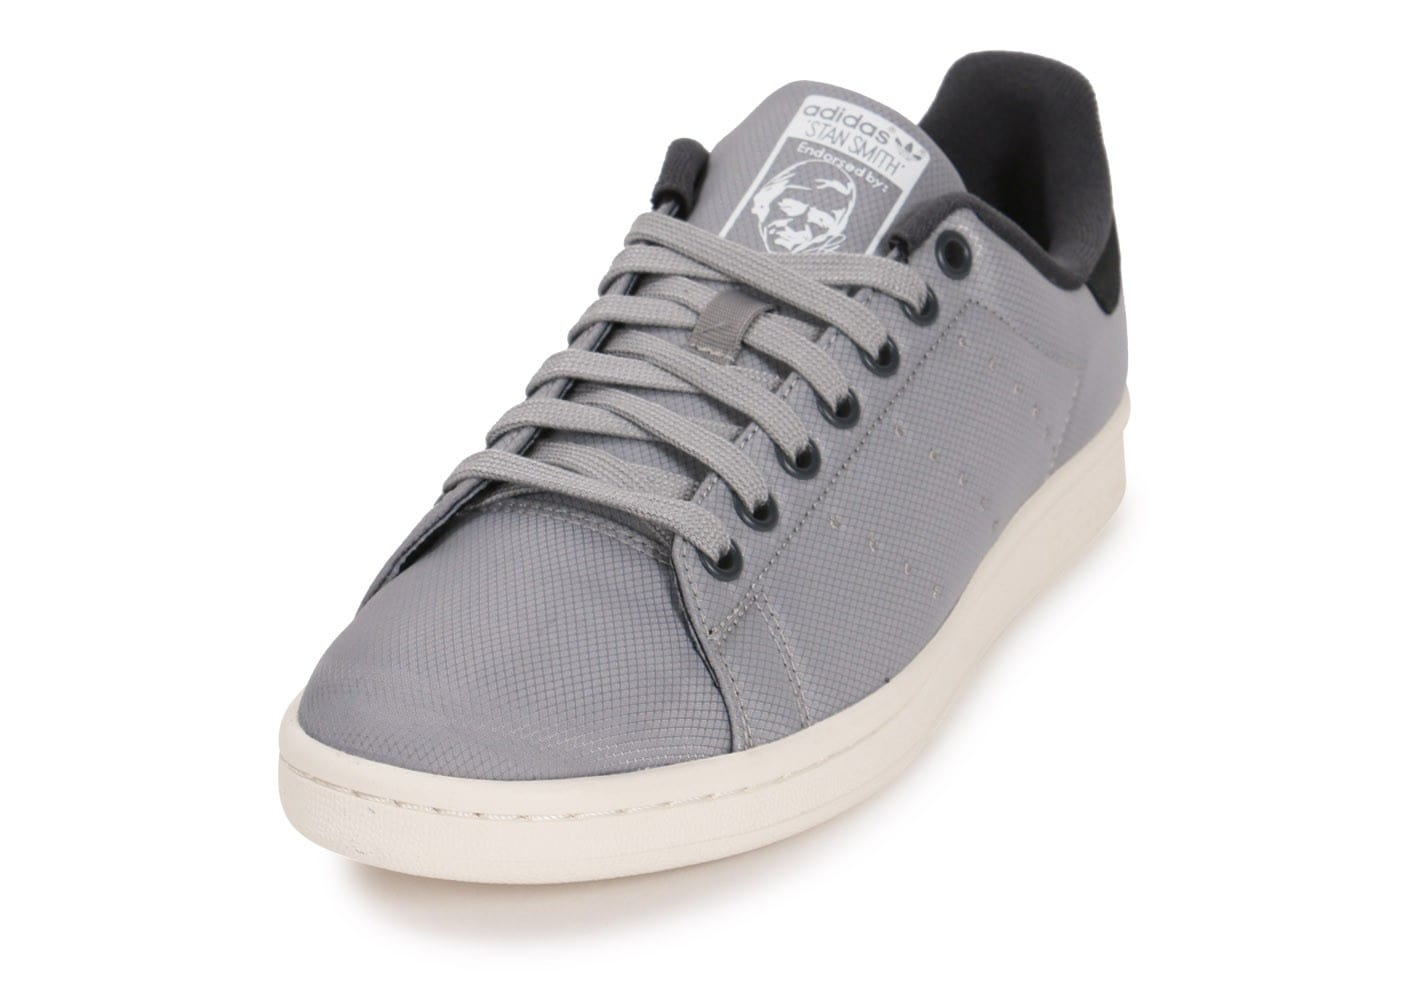 adidas stan smith txt grise chaussures baskets homme chausport. Black Bedroom Furniture Sets. Home Design Ideas